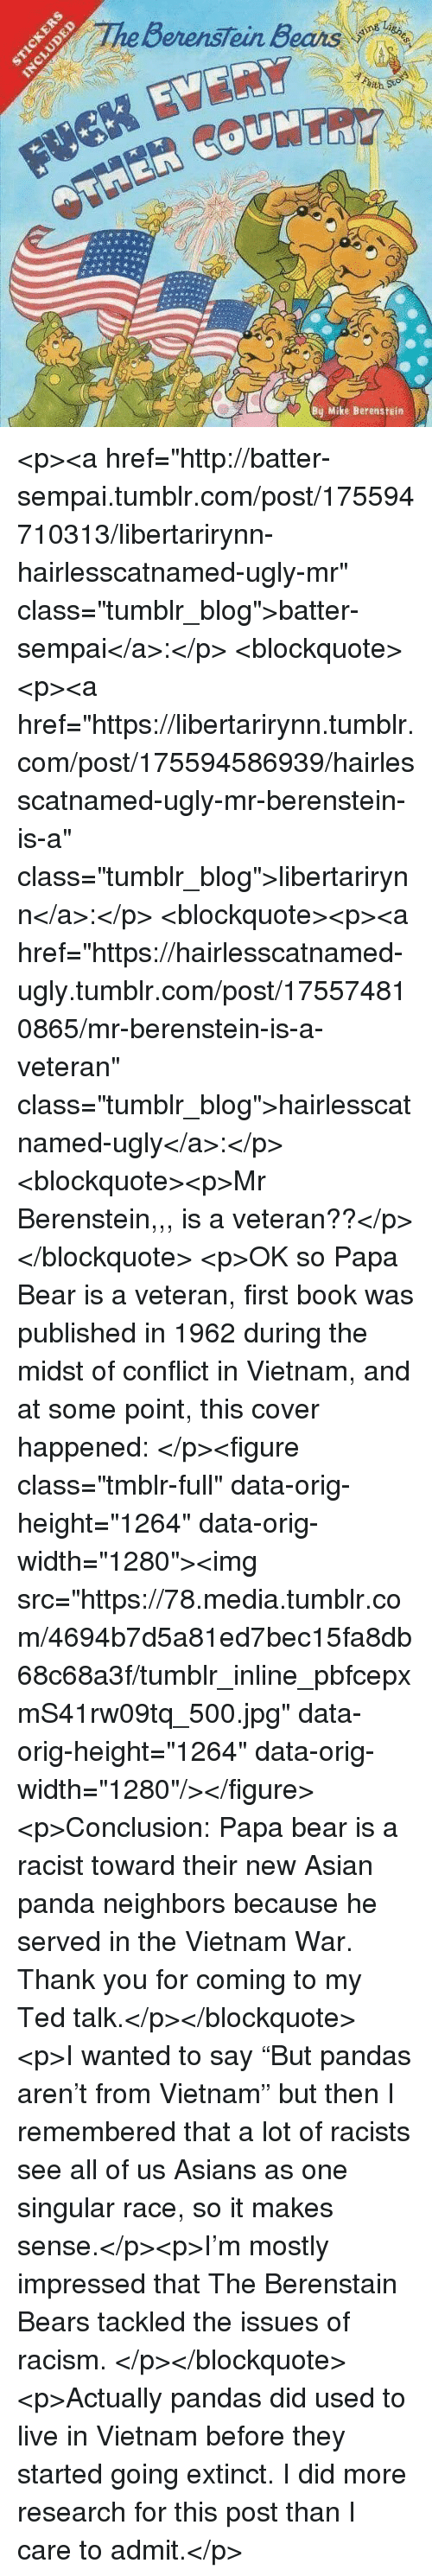 "papa bear: BerensTein Bears  ith  By Mike Berenstein <p><a href=""http://batter-sempai.tumblr.com/post/175594710313/libertarirynn-hairlesscatnamed-ugly-mr"" class=""tumblr_blog"">batter-sempai</a>:</p>  <blockquote><p><a href=""https://libertarirynn.tumblr.com/post/175594586939/hairlesscatnamed-ugly-mr-berenstein-is-a"" class=""tumblr_blog"">libertarirynn</a>:</p>  <blockquote><p><a href=""https://hairlesscatnamed-ugly.tumblr.com/post/175574810865/mr-berenstein-is-a-veteran"" class=""tumblr_blog"">hairlesscatnamed-ugly</a>:</p>  <blockquote><p>Mr Berenstein,,, is a veteran??</p></blockquote>  <p>OK so Papa Bear is a veteran, first book was published in 1962 during the midst of conflict in Vietnam, and at some point, this cover happened: </p><figure class=""tmblr-full"" data-orig-height=""1264"" data-orig-width=""1280""><img src=""https://78.media.tumblr.com/4694b7d5a81ed7bec15fa8db68c68a3f/tumblr_inline_pbfcepxmS41rw09tq_500.jpg"" data-orig-height=""1264"" data-orig-width=""1280""/></figure><p>Conclusion: Papa bear is a racist toward their new Asian panda neighbors because he served in the Vietnam War. Thank you for coming to my Ted talk.</p></blockquote>  <p>I wanted to say ""But pandas aren't from Vietnam"" but then I remembered that a lot of racists see all of us Asians as one singular race, so it makes sense.</p><p>I'm mostly impressed that The Berenstain Bears tackled the issues of racism. </p></blockquote>  <p>Actually pandas did used to live in Vietnam before they started going extinct. I did more research for this post than I care to admit.</p>"